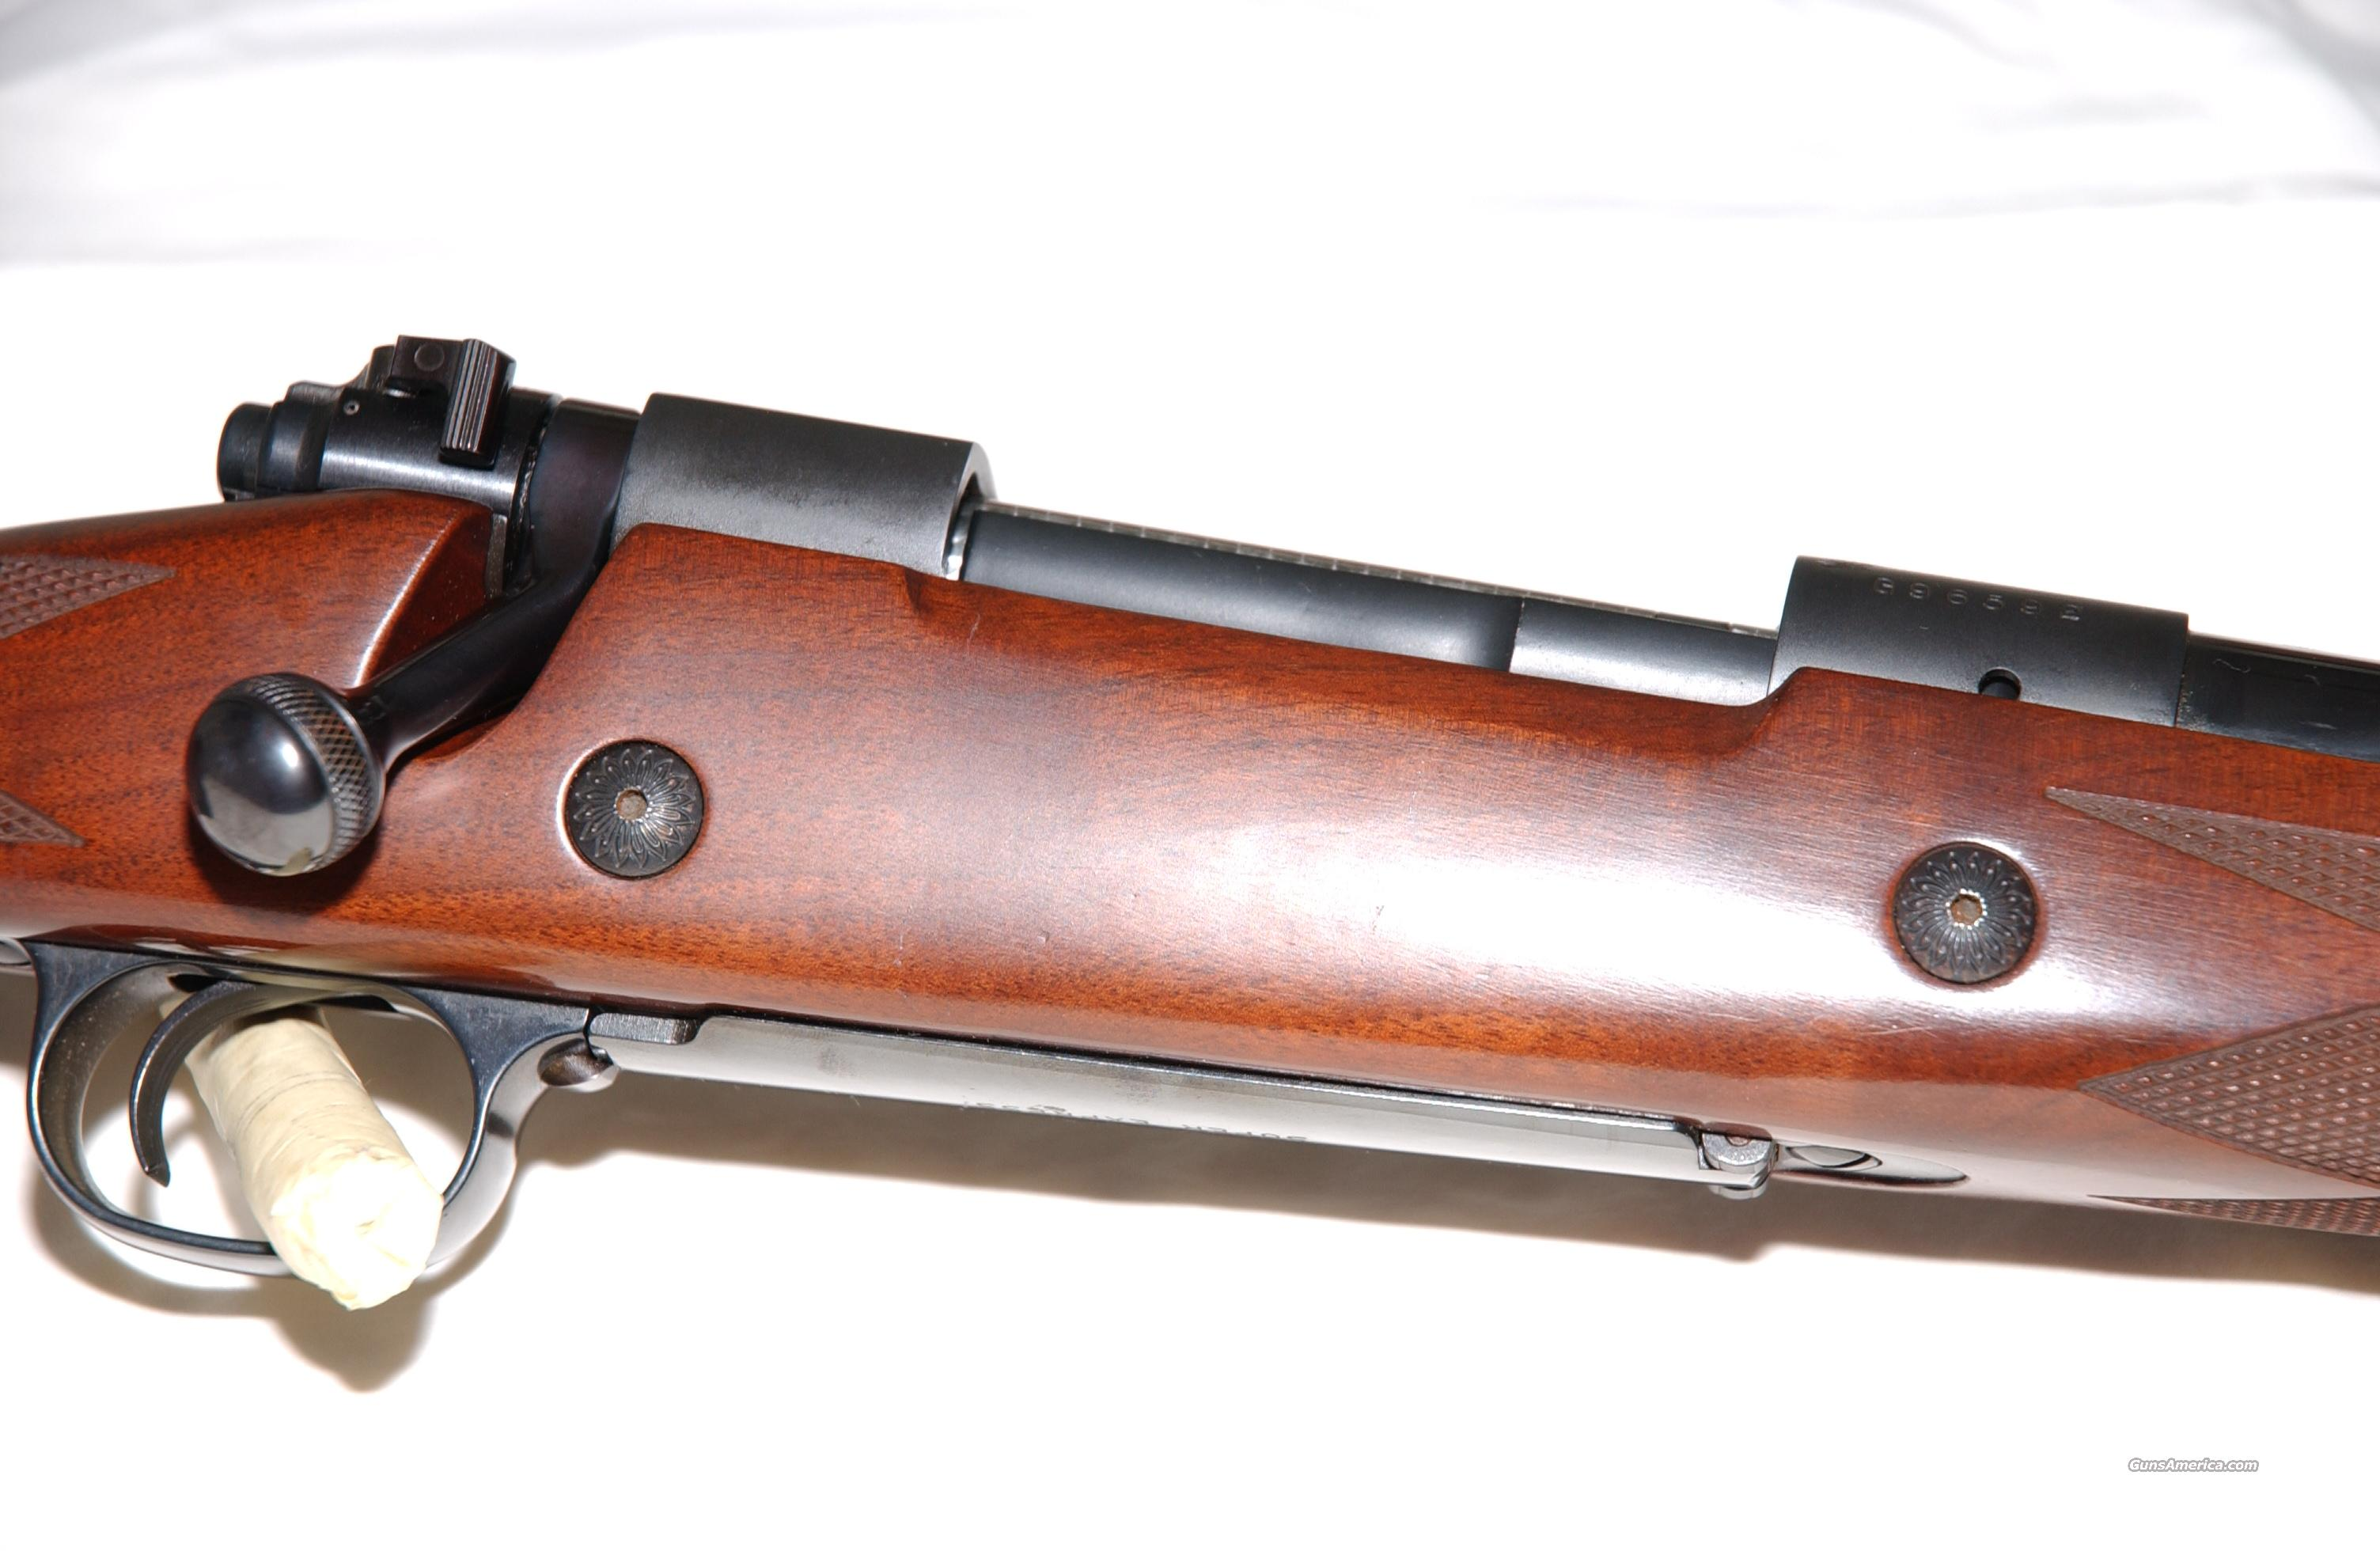 Winchester Mod. 70 in 375 H & H Magnum  Guns > Rifles > Winchester Rifles - Modern Bolt/Auto/Single > Model 70 > Post-64